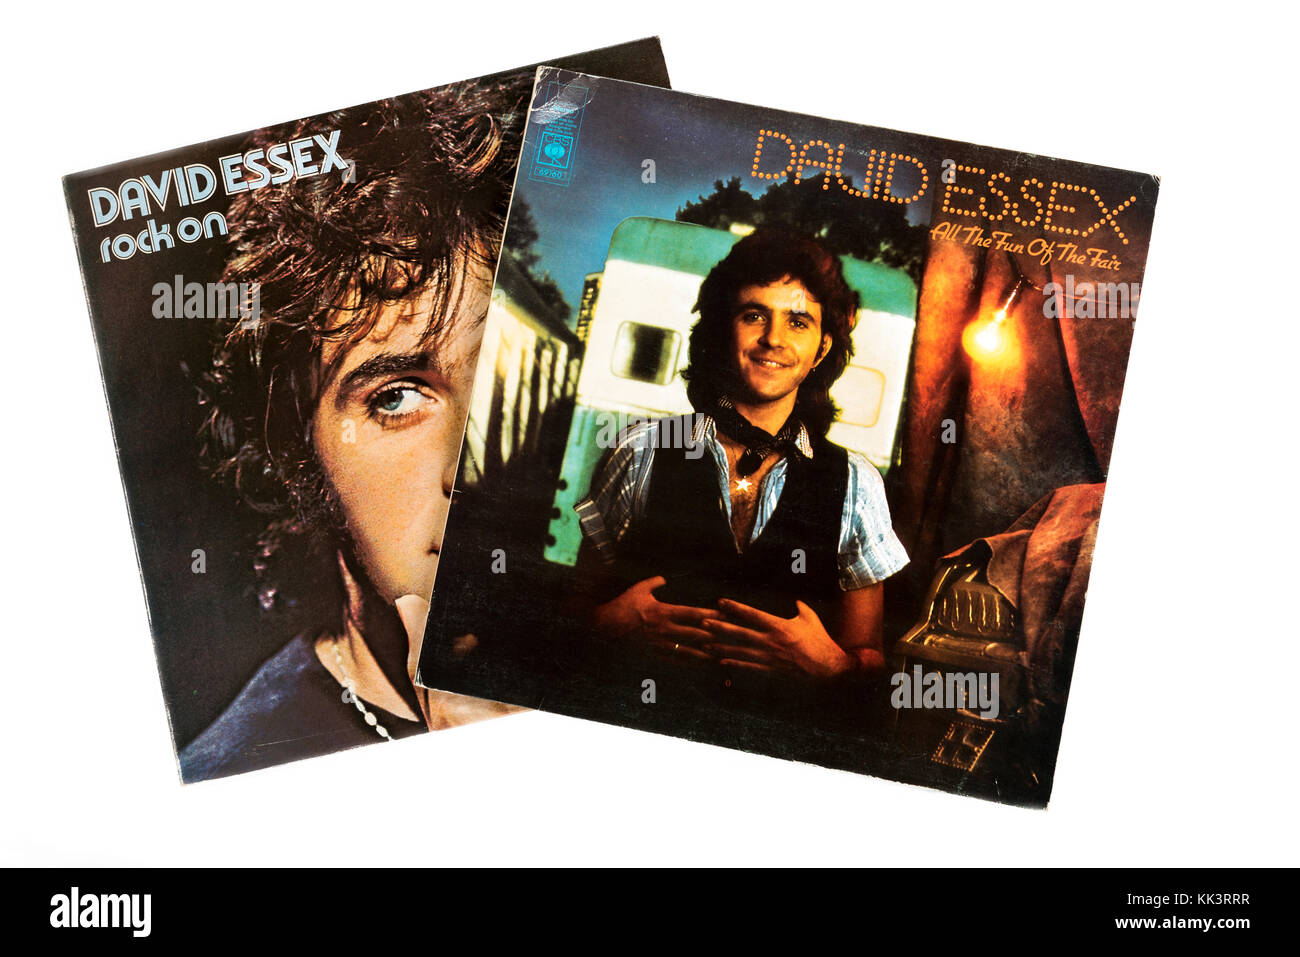 Album Covers 1970s Stock Photos Amp Album Covers 1970s Stock